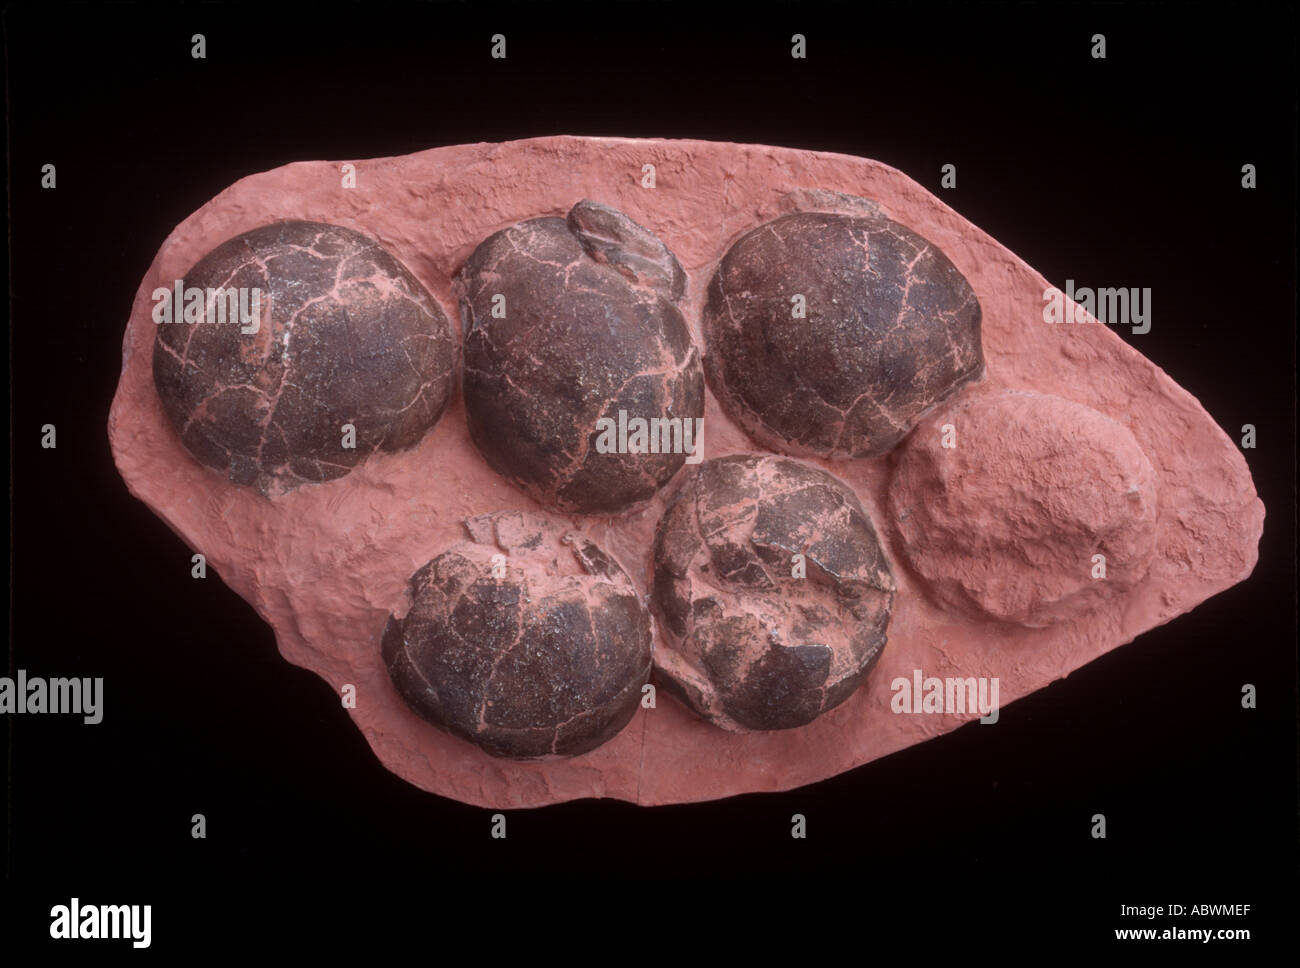 Dinosaur nest with 6 eggs from China - Stock Image